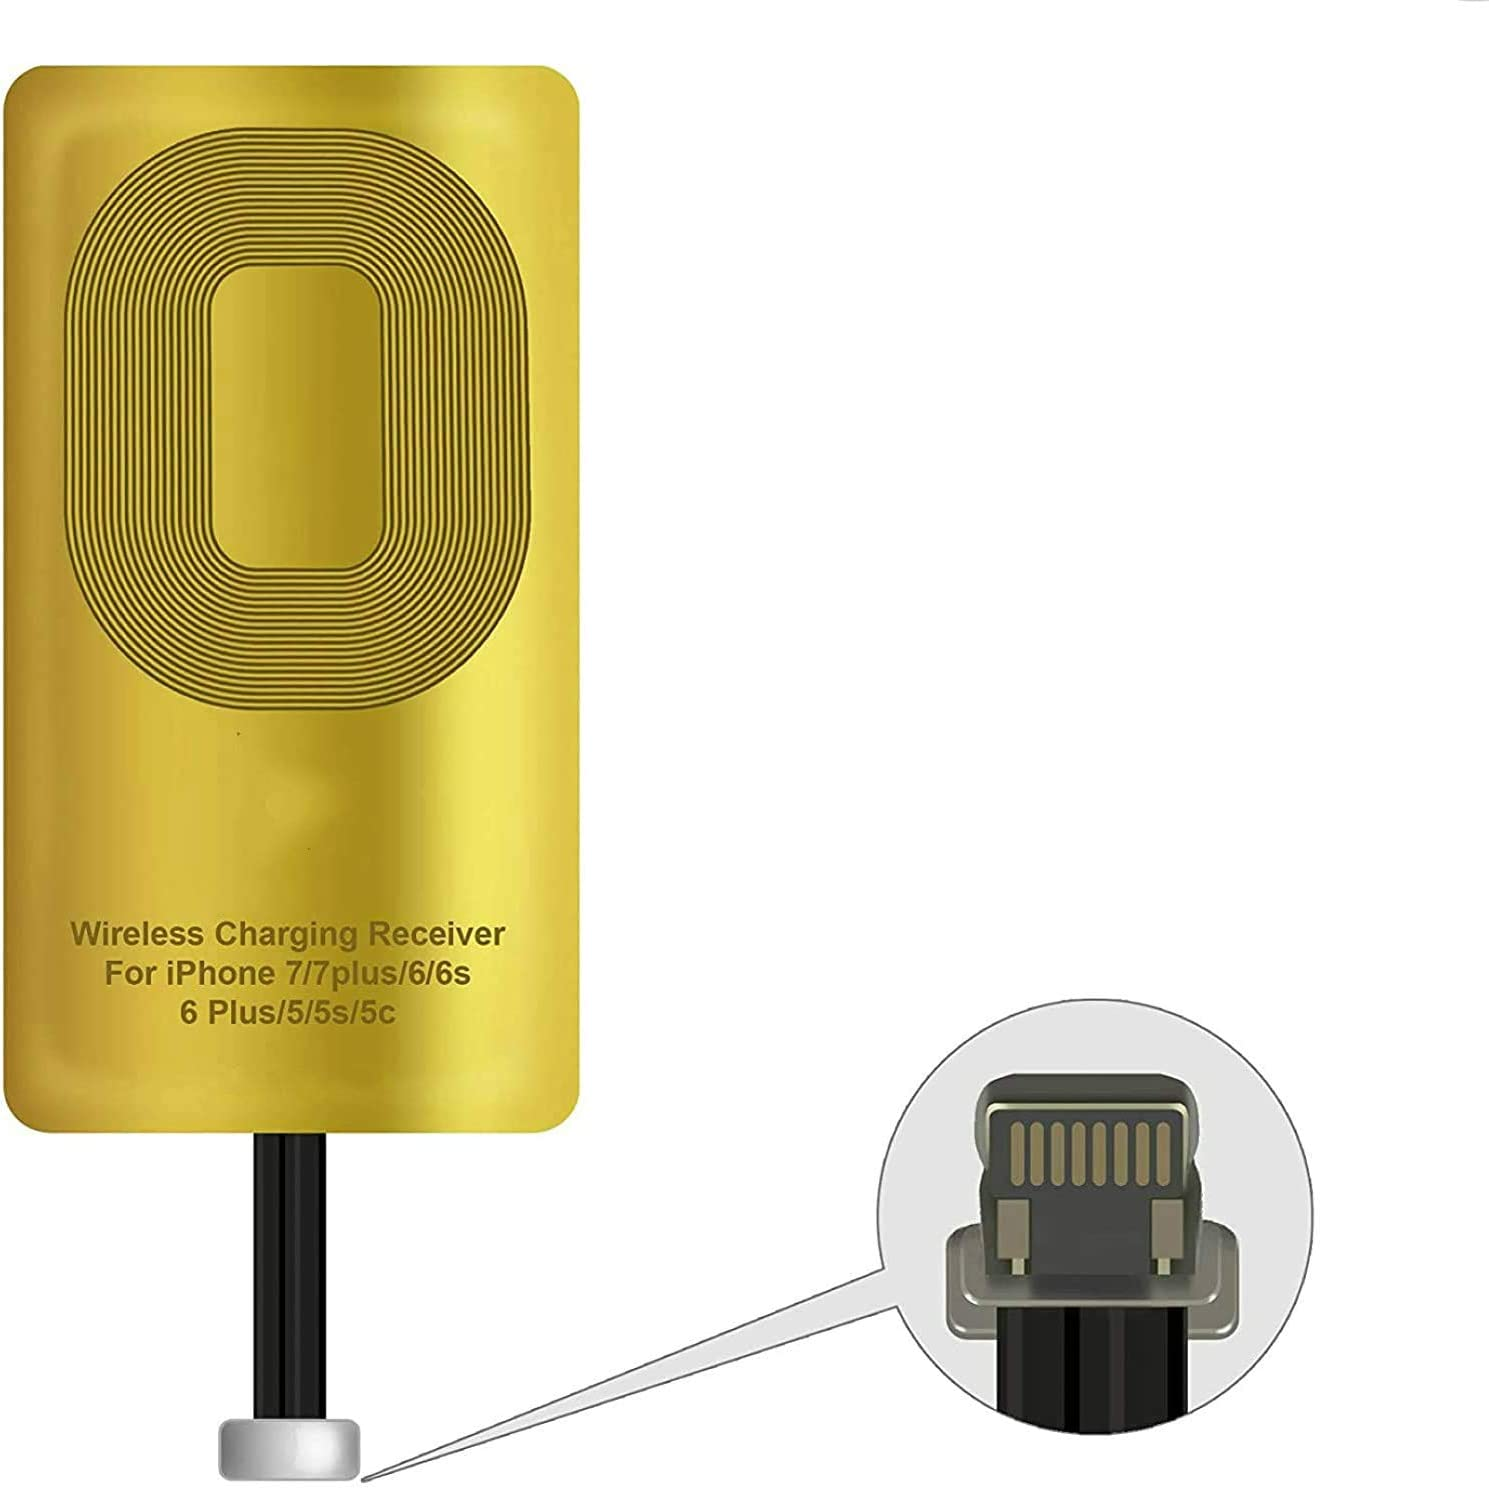 Ultra Thin Qi Receiver Chip Compatible with All Wireless Chargers Qi Receiver Wireless Charging, Qi Wireless Receiver for iPhone 7/7 Plus / 6/6 Plus / 6S / 6S Plus / 5 / 5S / 5C